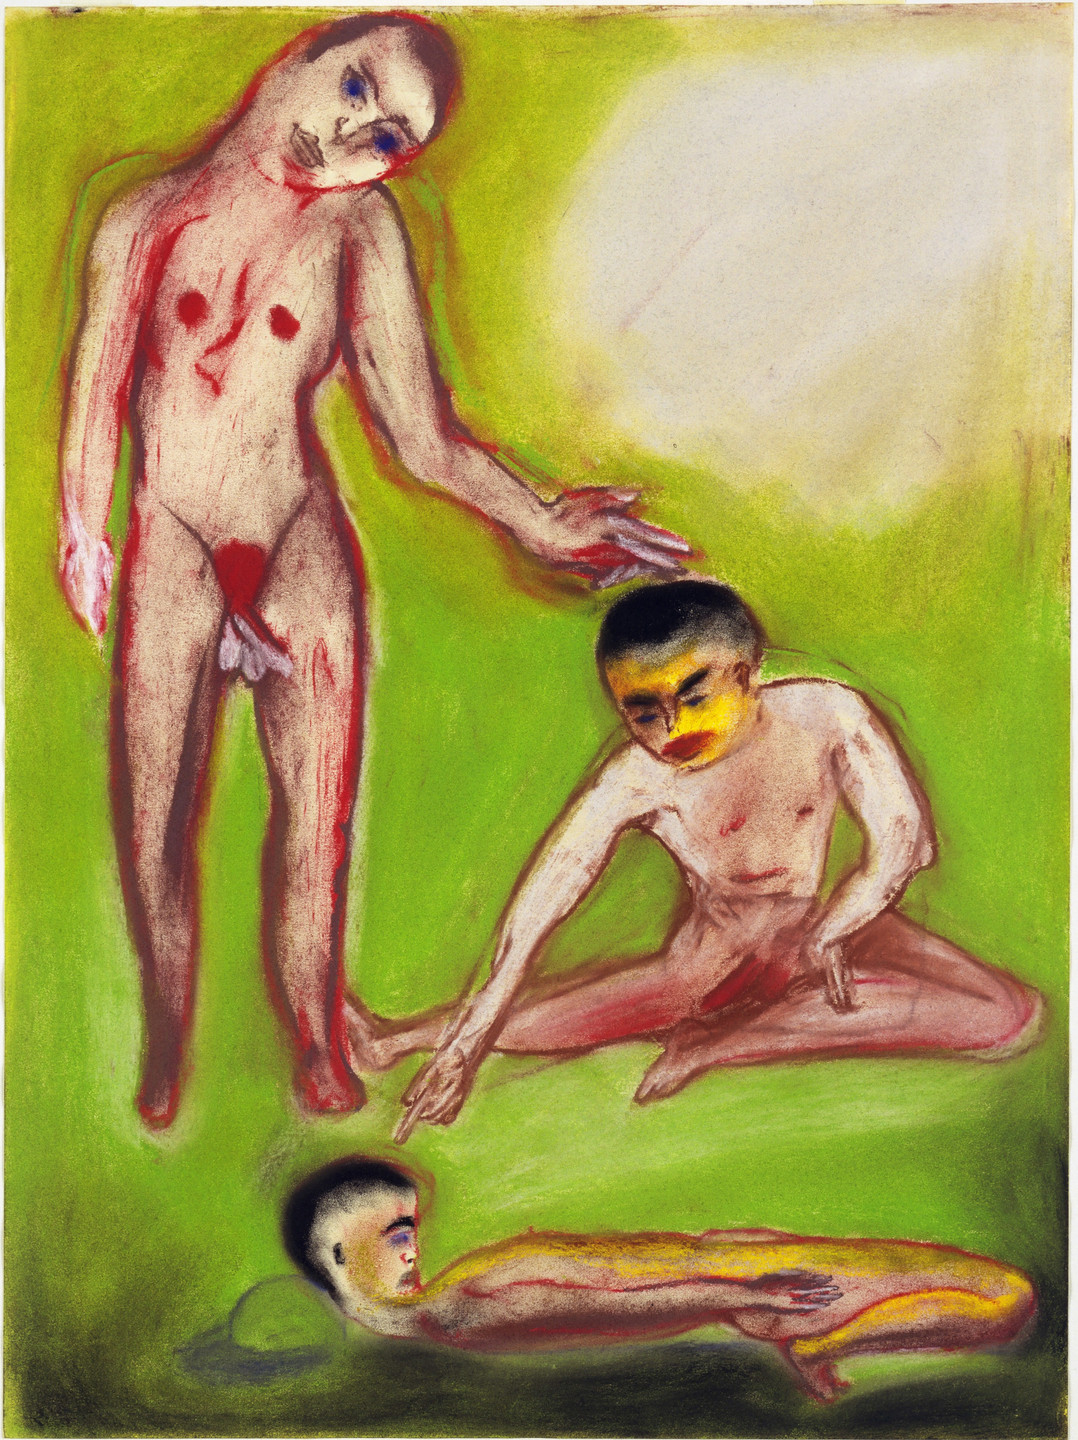 Francesco Clemente. Untitled. (n.d.)